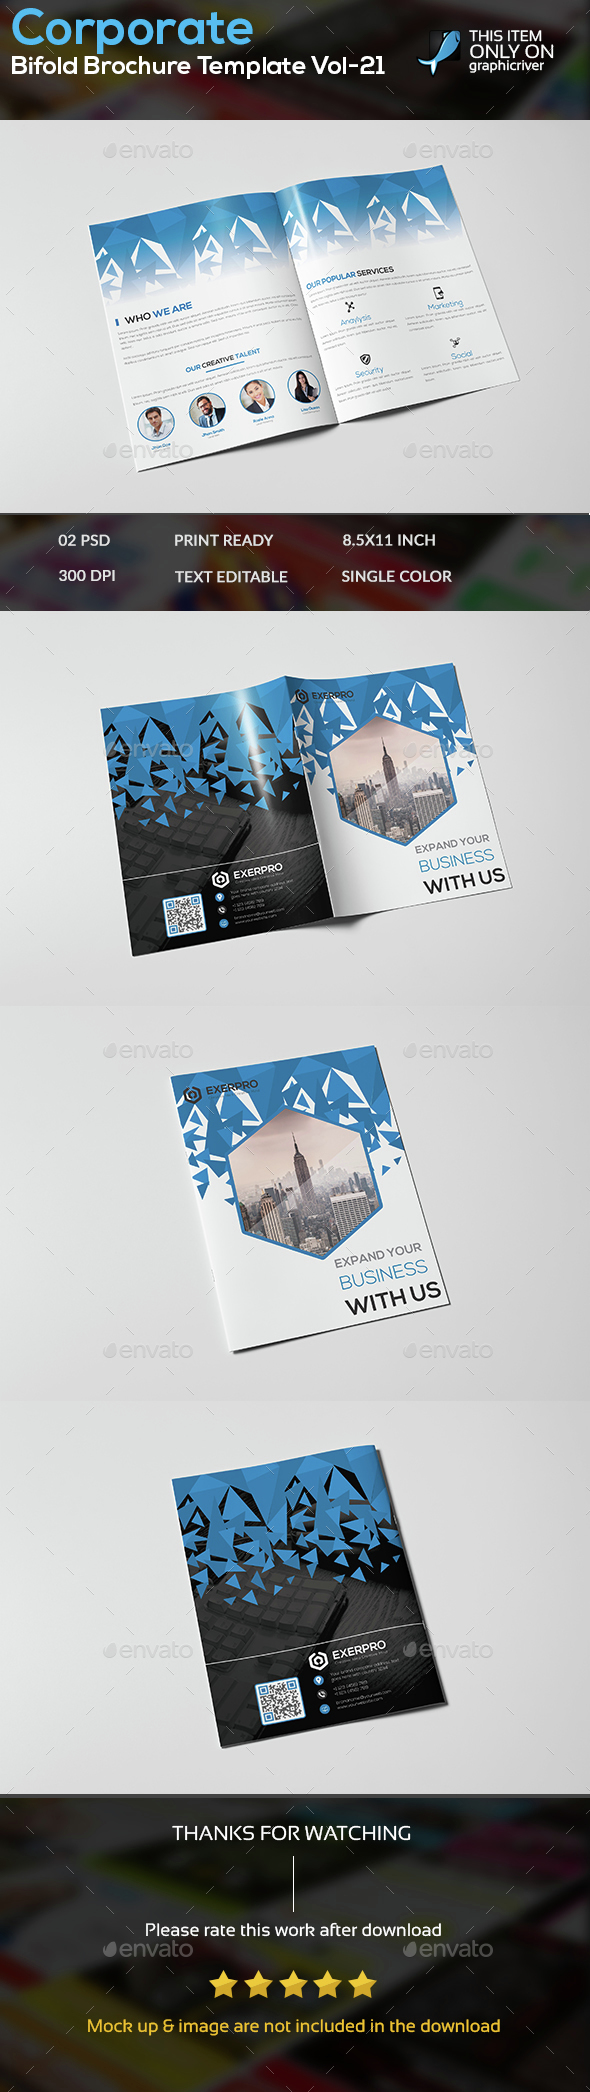 Corporate Bifold Brochure Template vol-21 - Brochures Print Templates